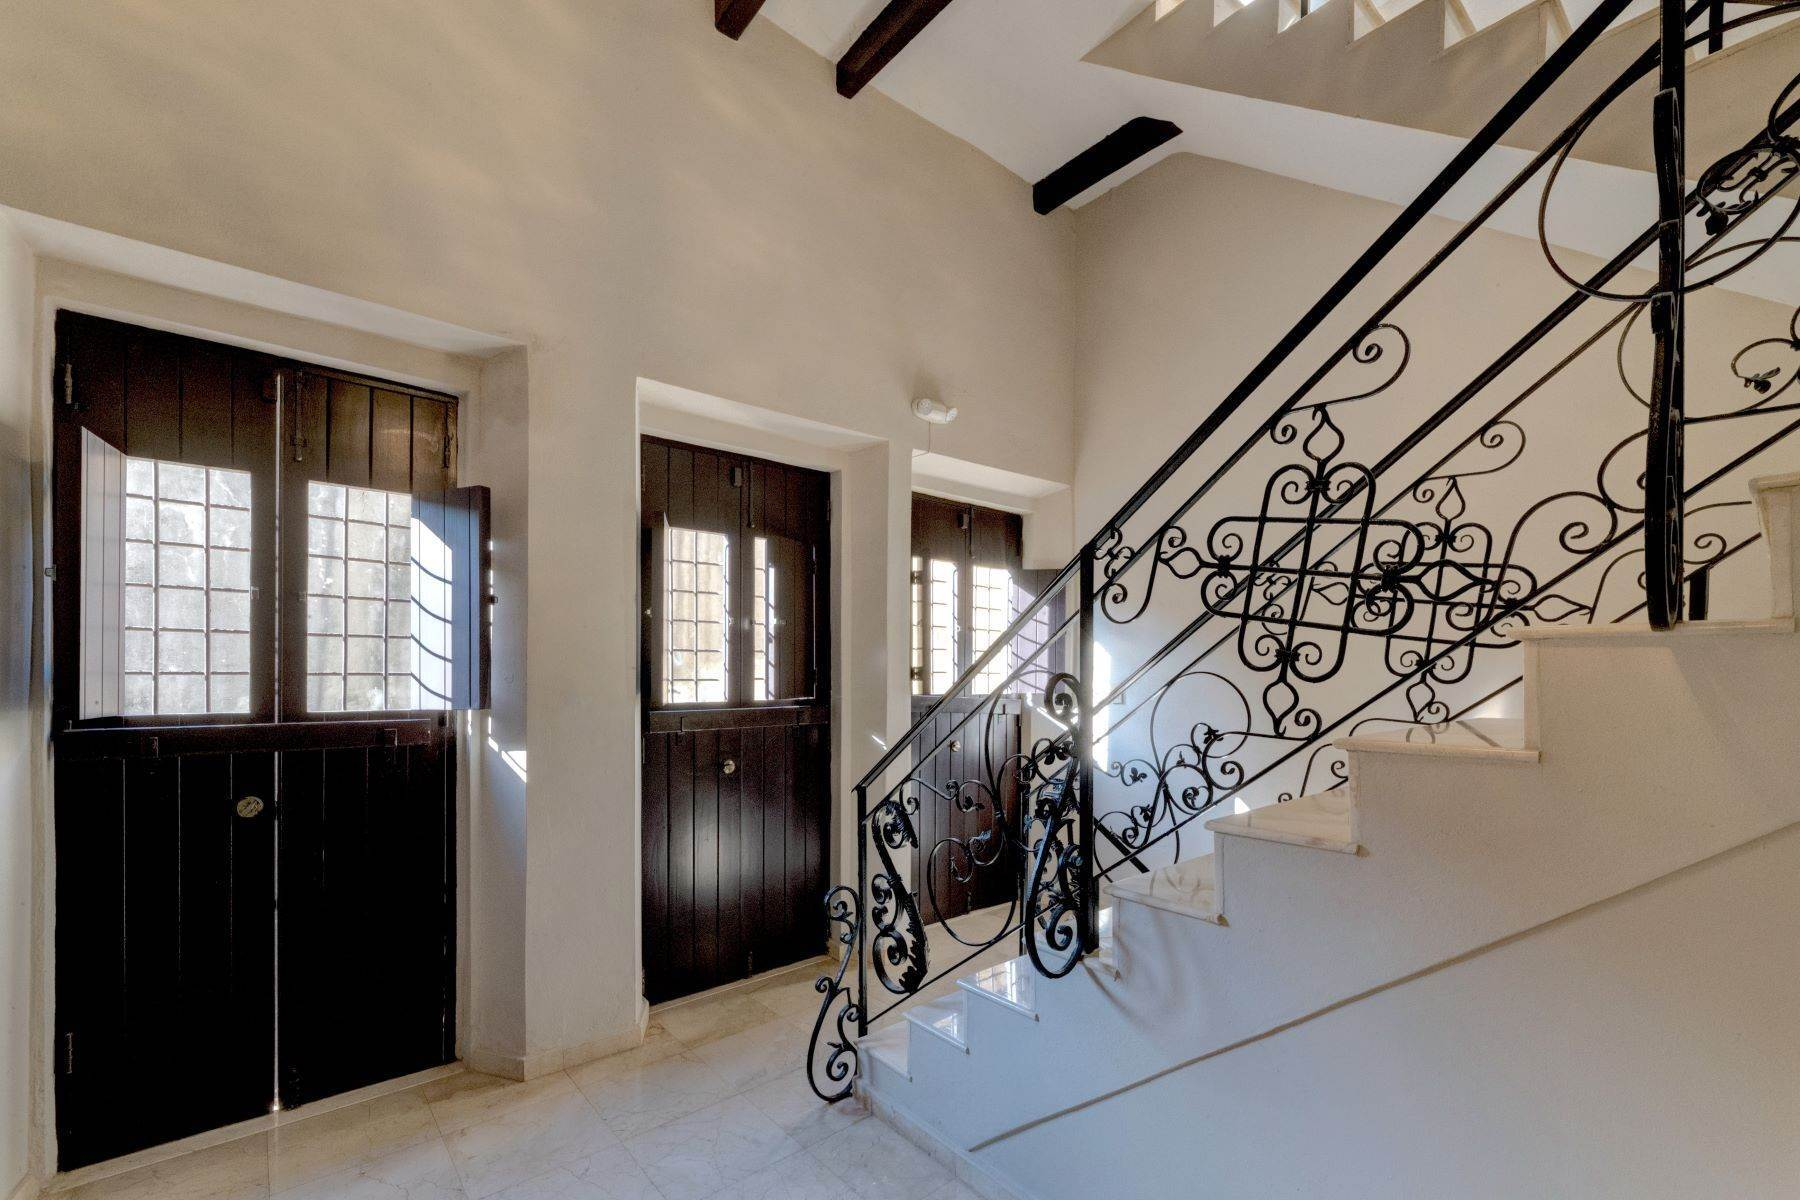 2. Single Family Homes for Sale at Splendid Old San Juan Living by the Bay 4 Sol St. Old San Juan, 00901 Puerto Rico